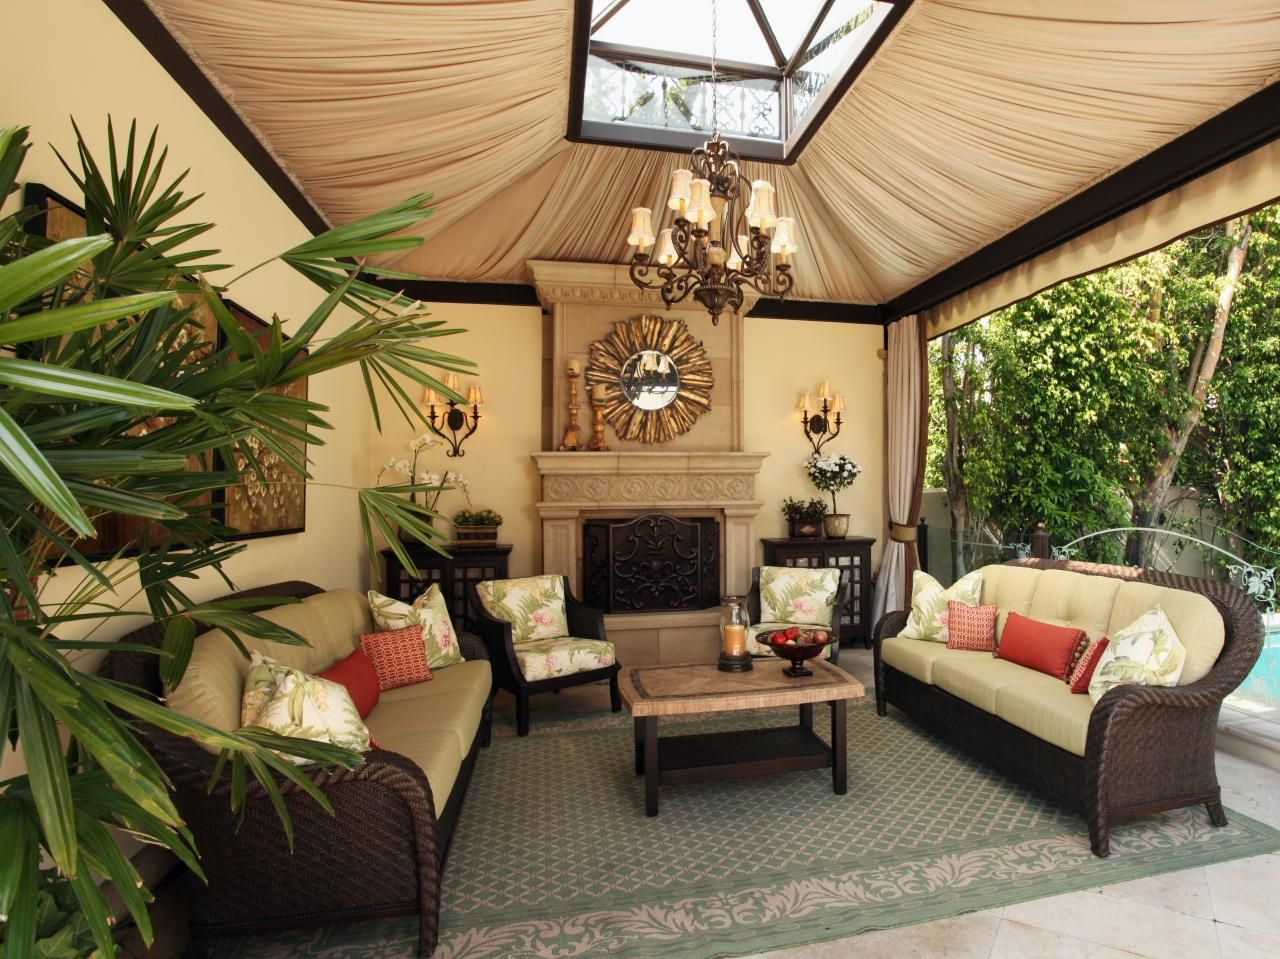 outdoor living room design. Designer Christopher Grubb Transforms A Typical Backyard Into High End  Lavish Outdoor Living Space Featuring Kitchen Dining Room And Pool Luxurious Backyard Retreat Outdoor Living Spaces